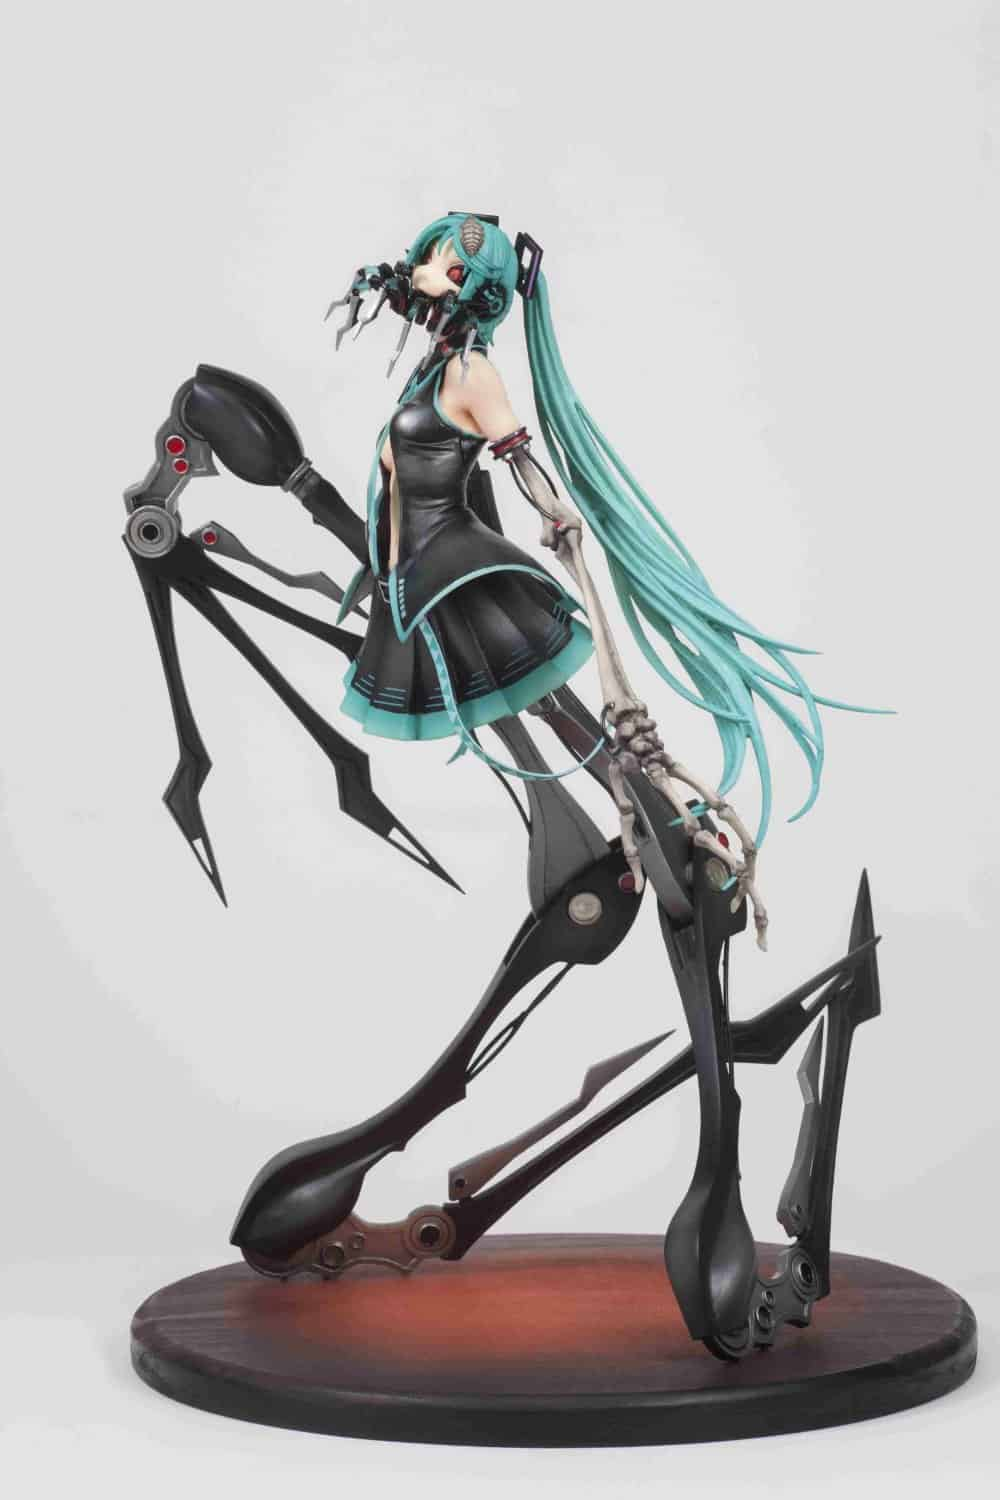 Union Creative H Series Calne Ca Vocaloid Figure Creepy Gamer Gift Idea